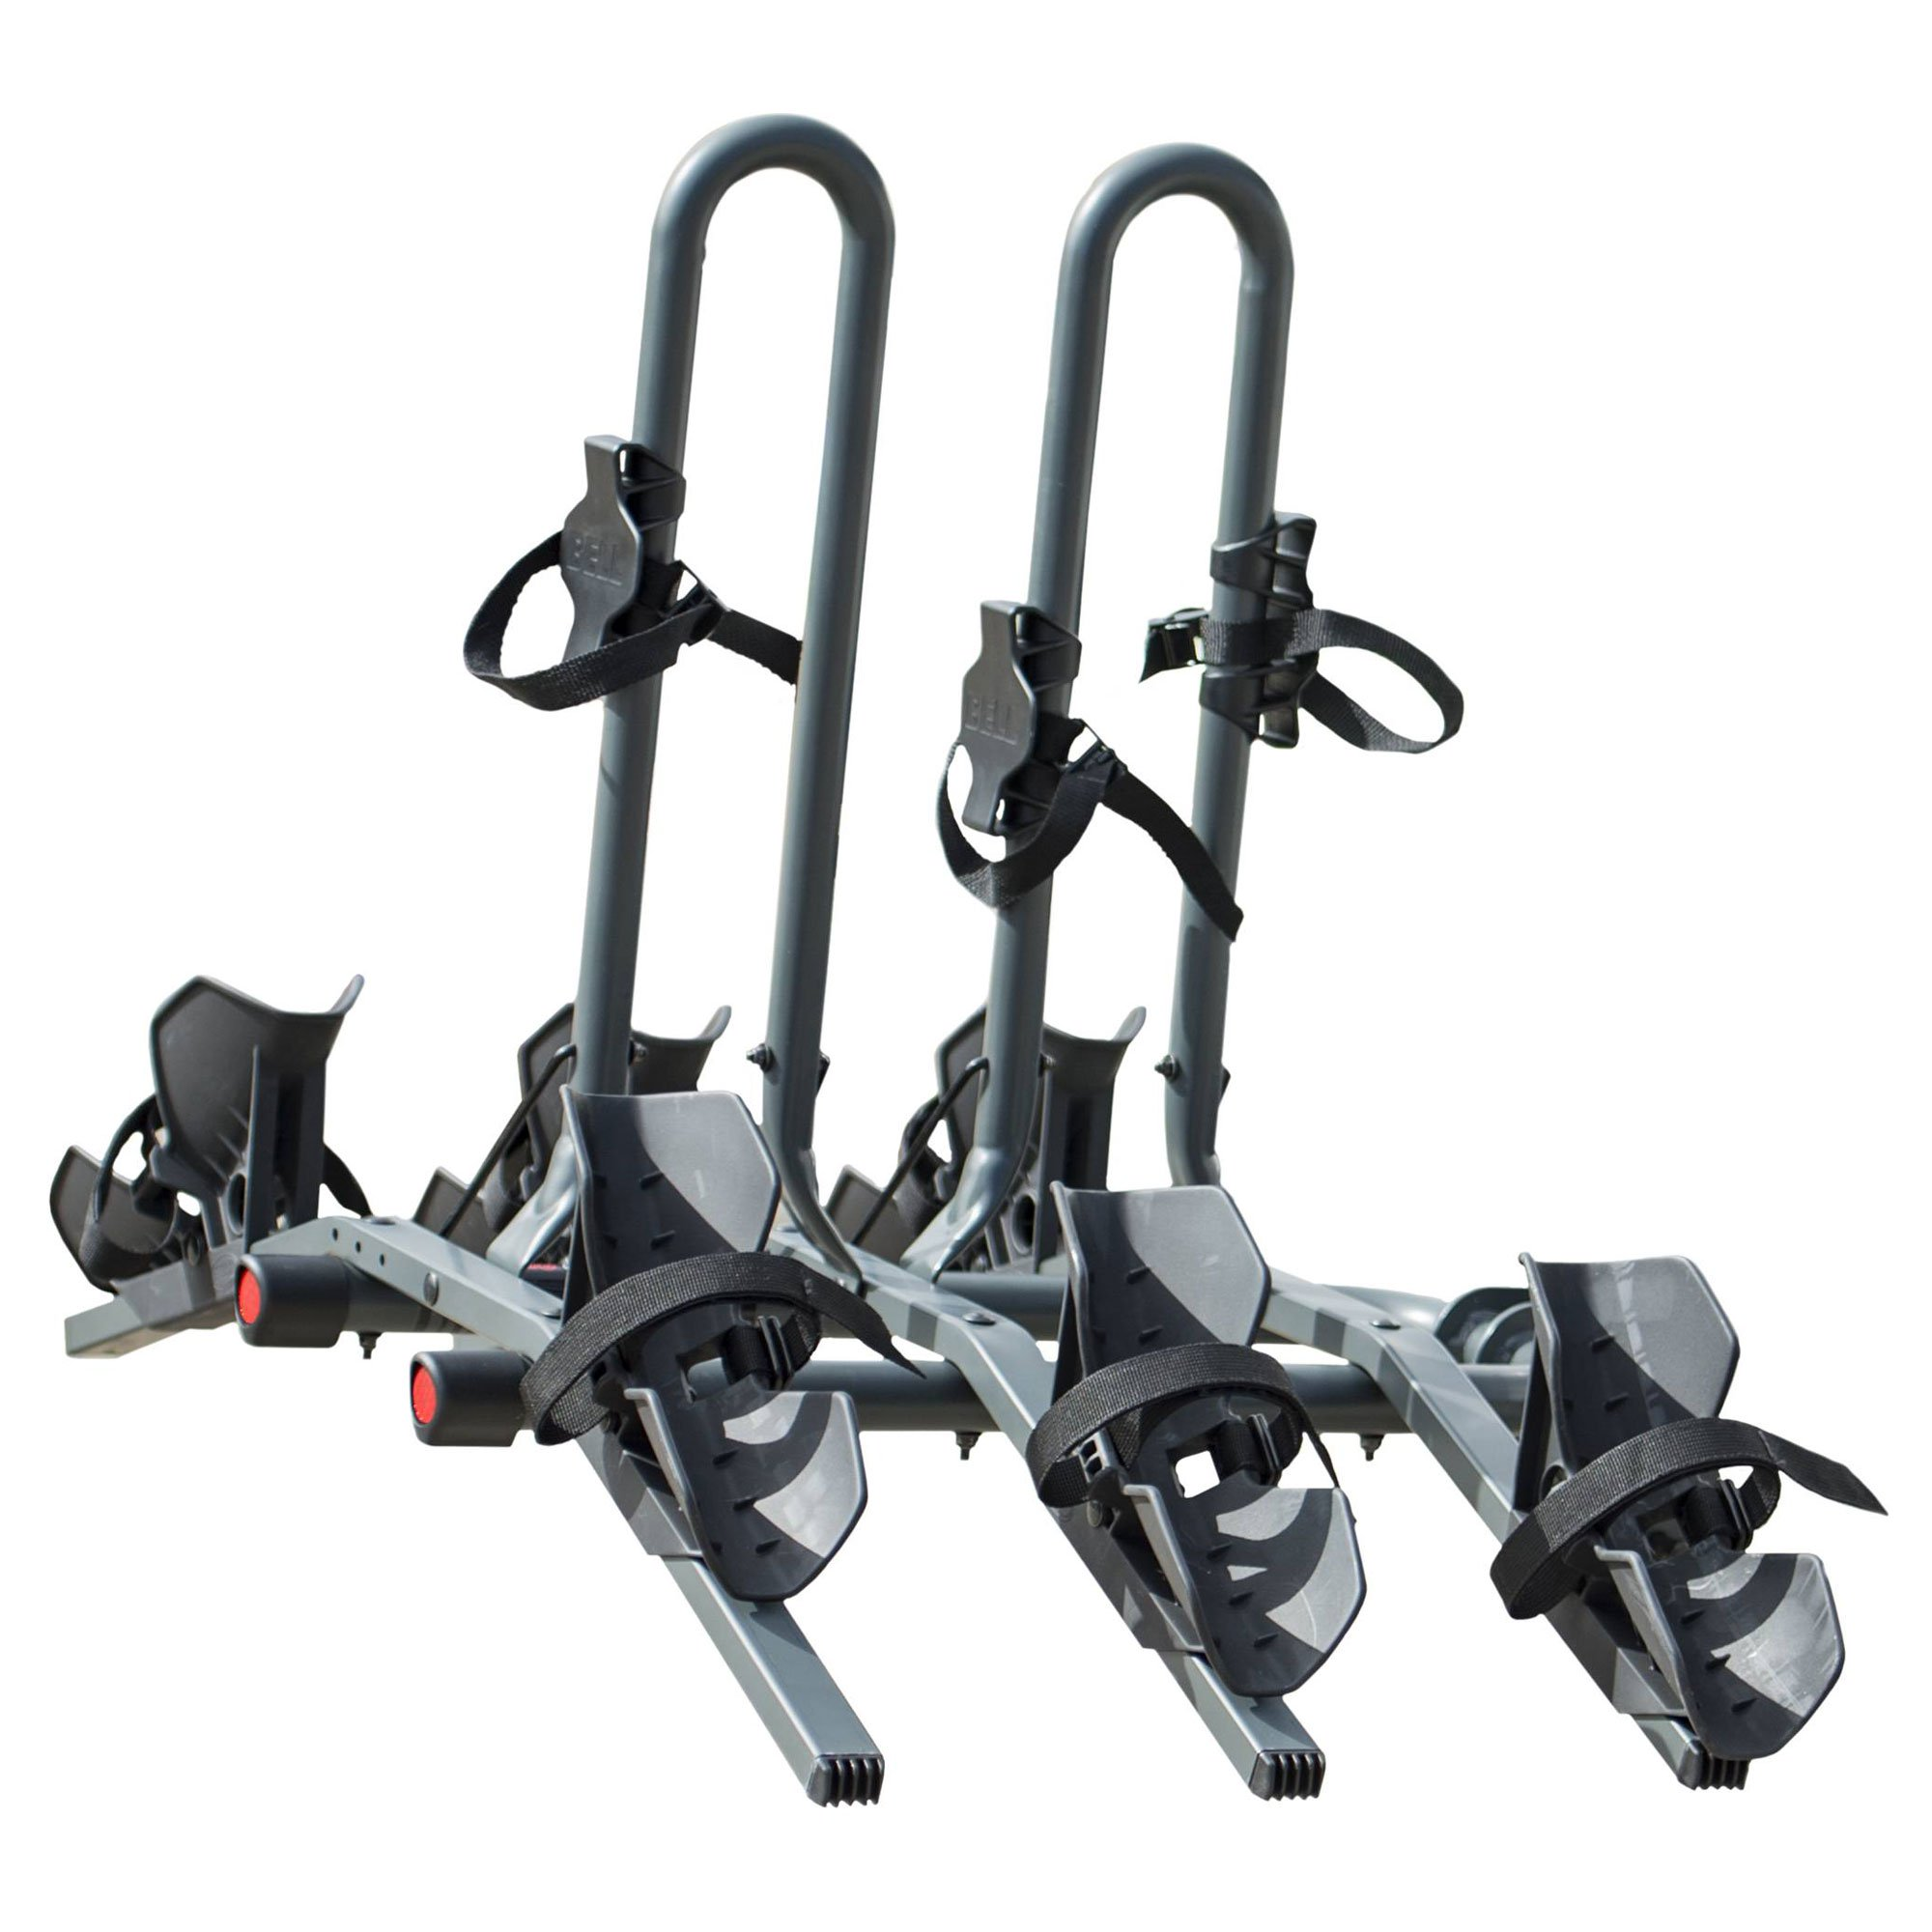 Bell RIGHT UP 350 Platform Hitch Rack, 3 Bike